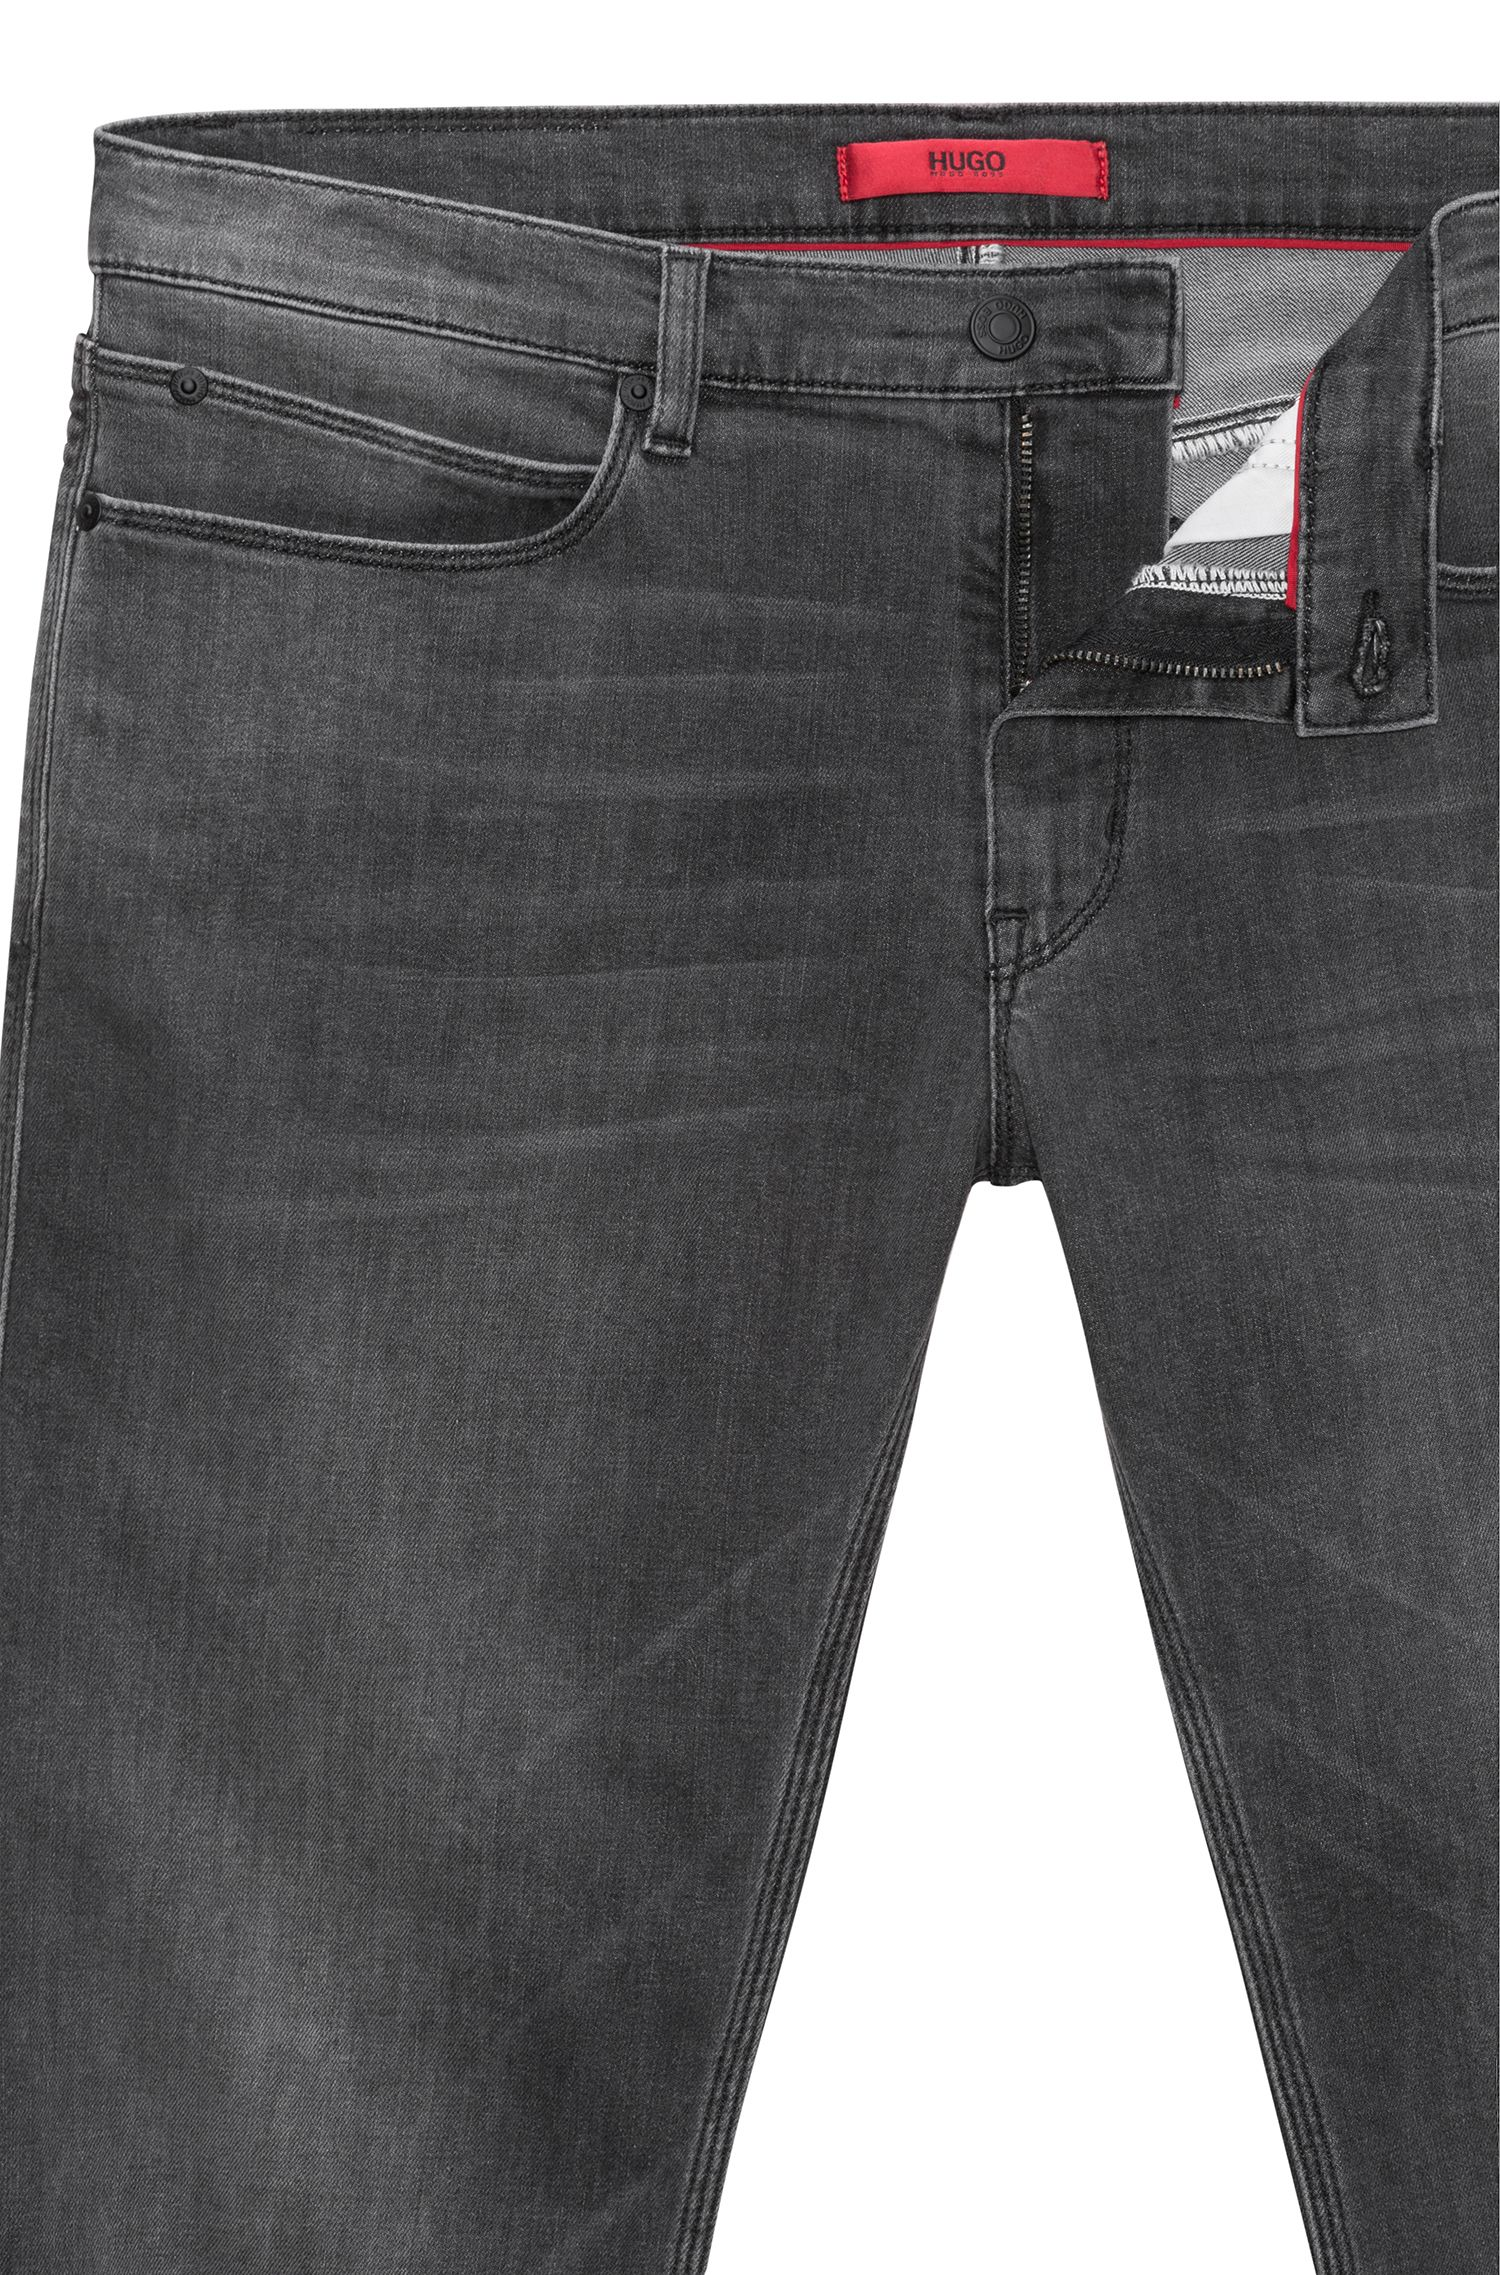 Hugo Boss - Slim-fit jeans in mid-grey stretch denim - 5